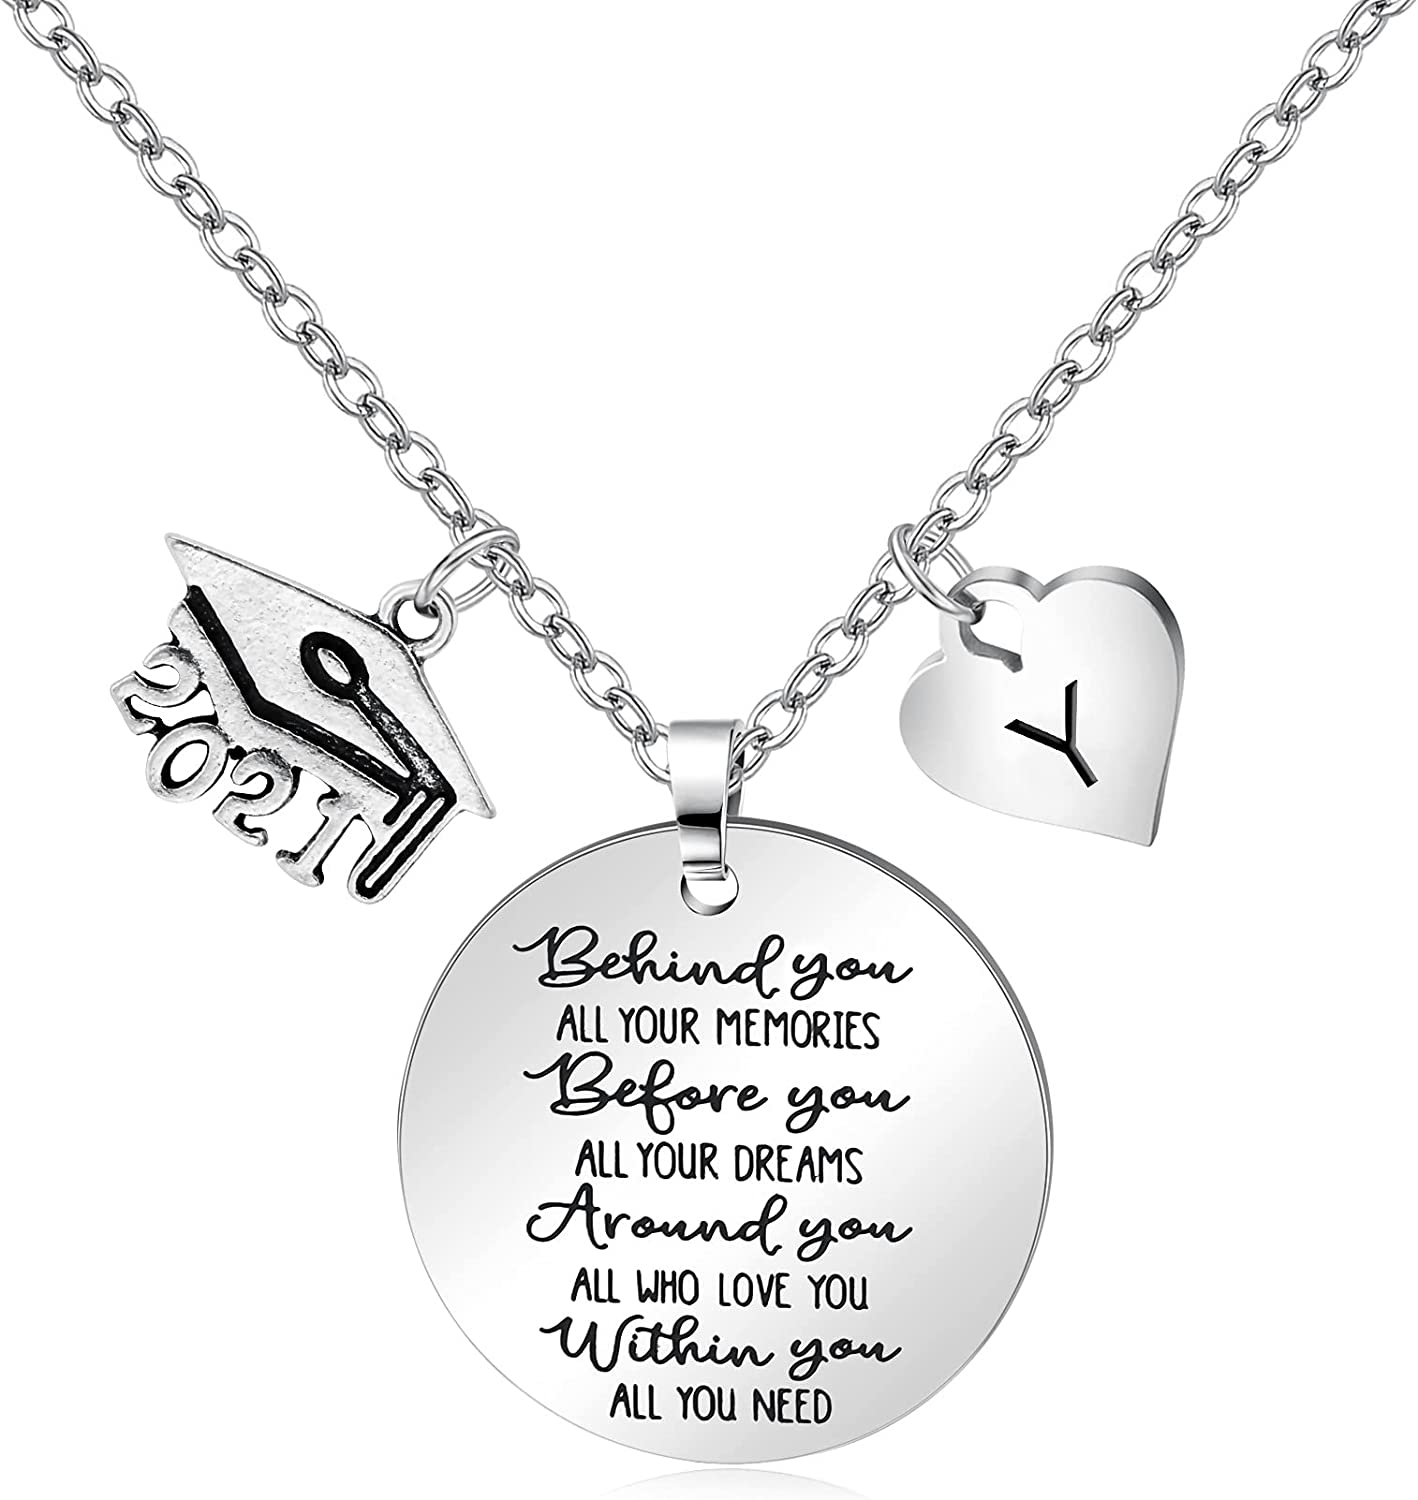 Inspirational Necklace Super Special SALE held Graduation Gifts for Cheap mail order sales of 2 Women Her Class